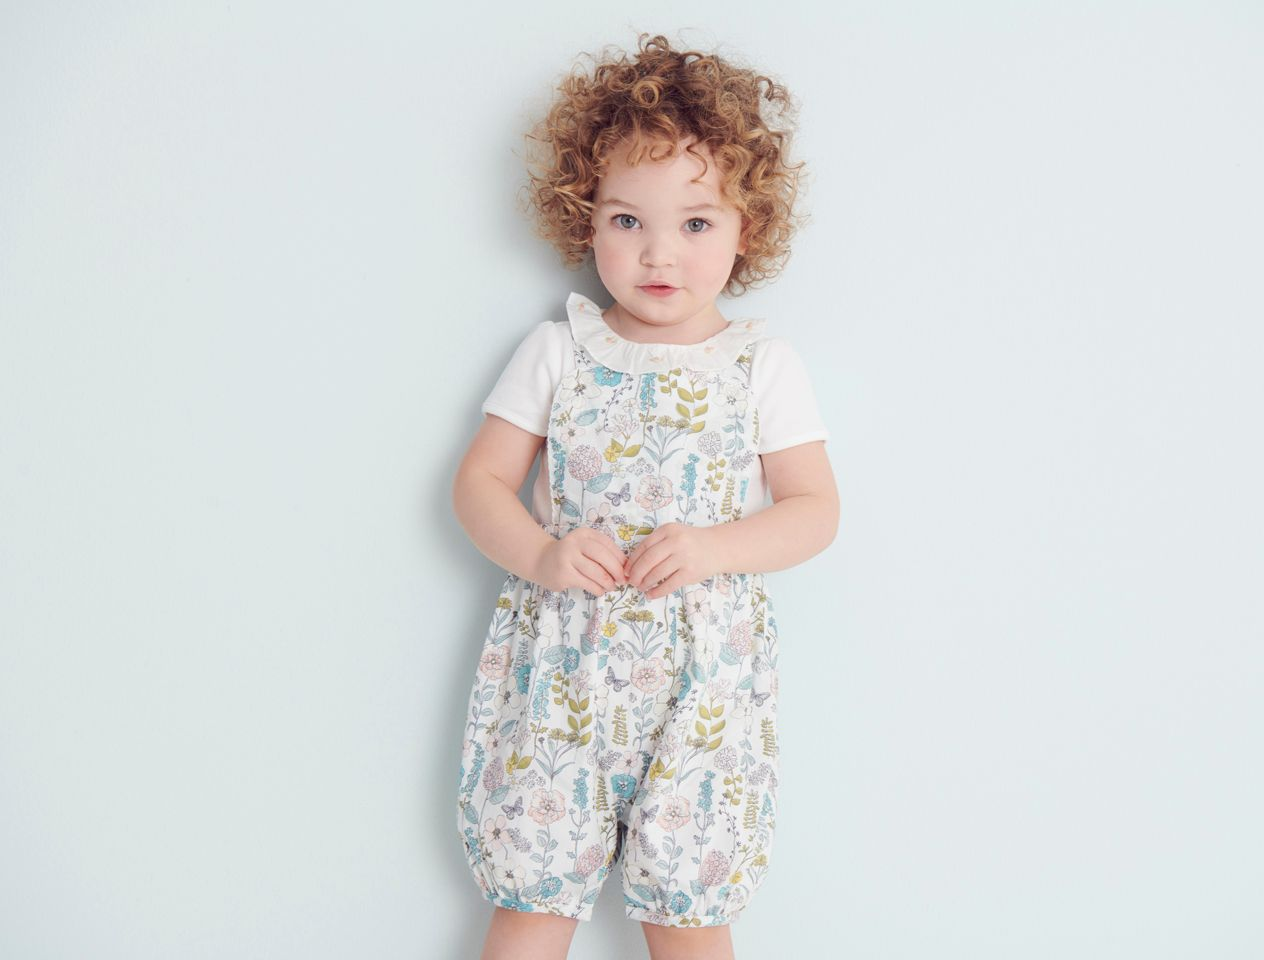 Toddler in romper suit